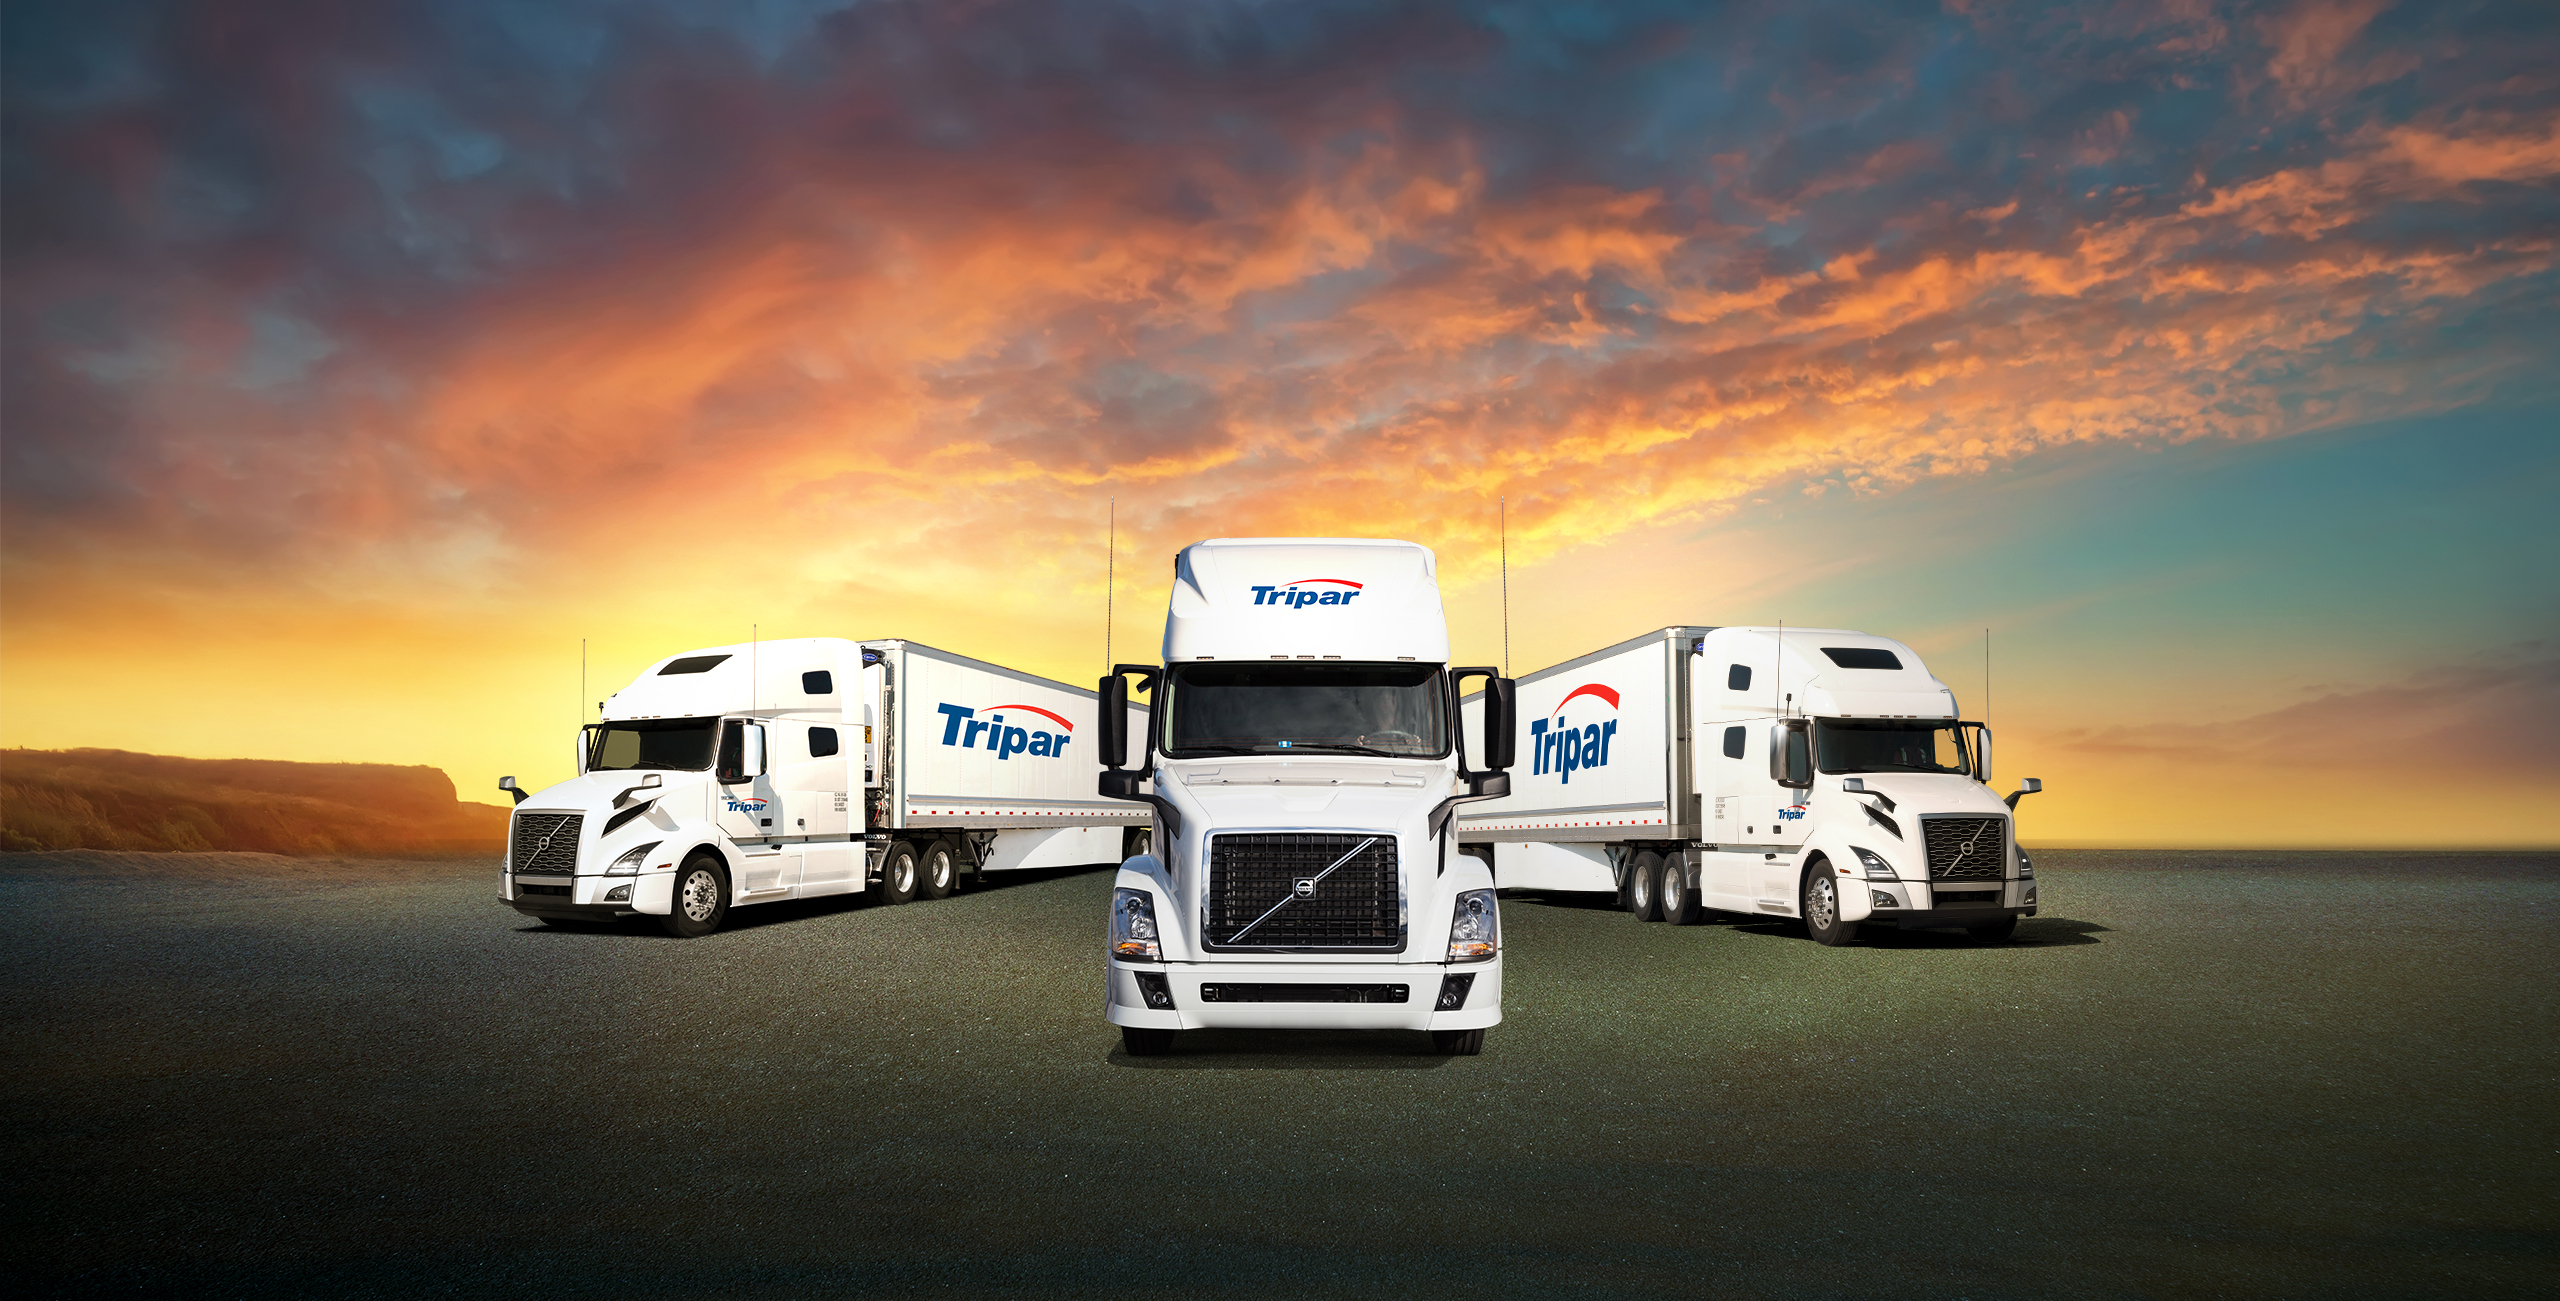 Three transport trucks and trailers parked with sunset in background